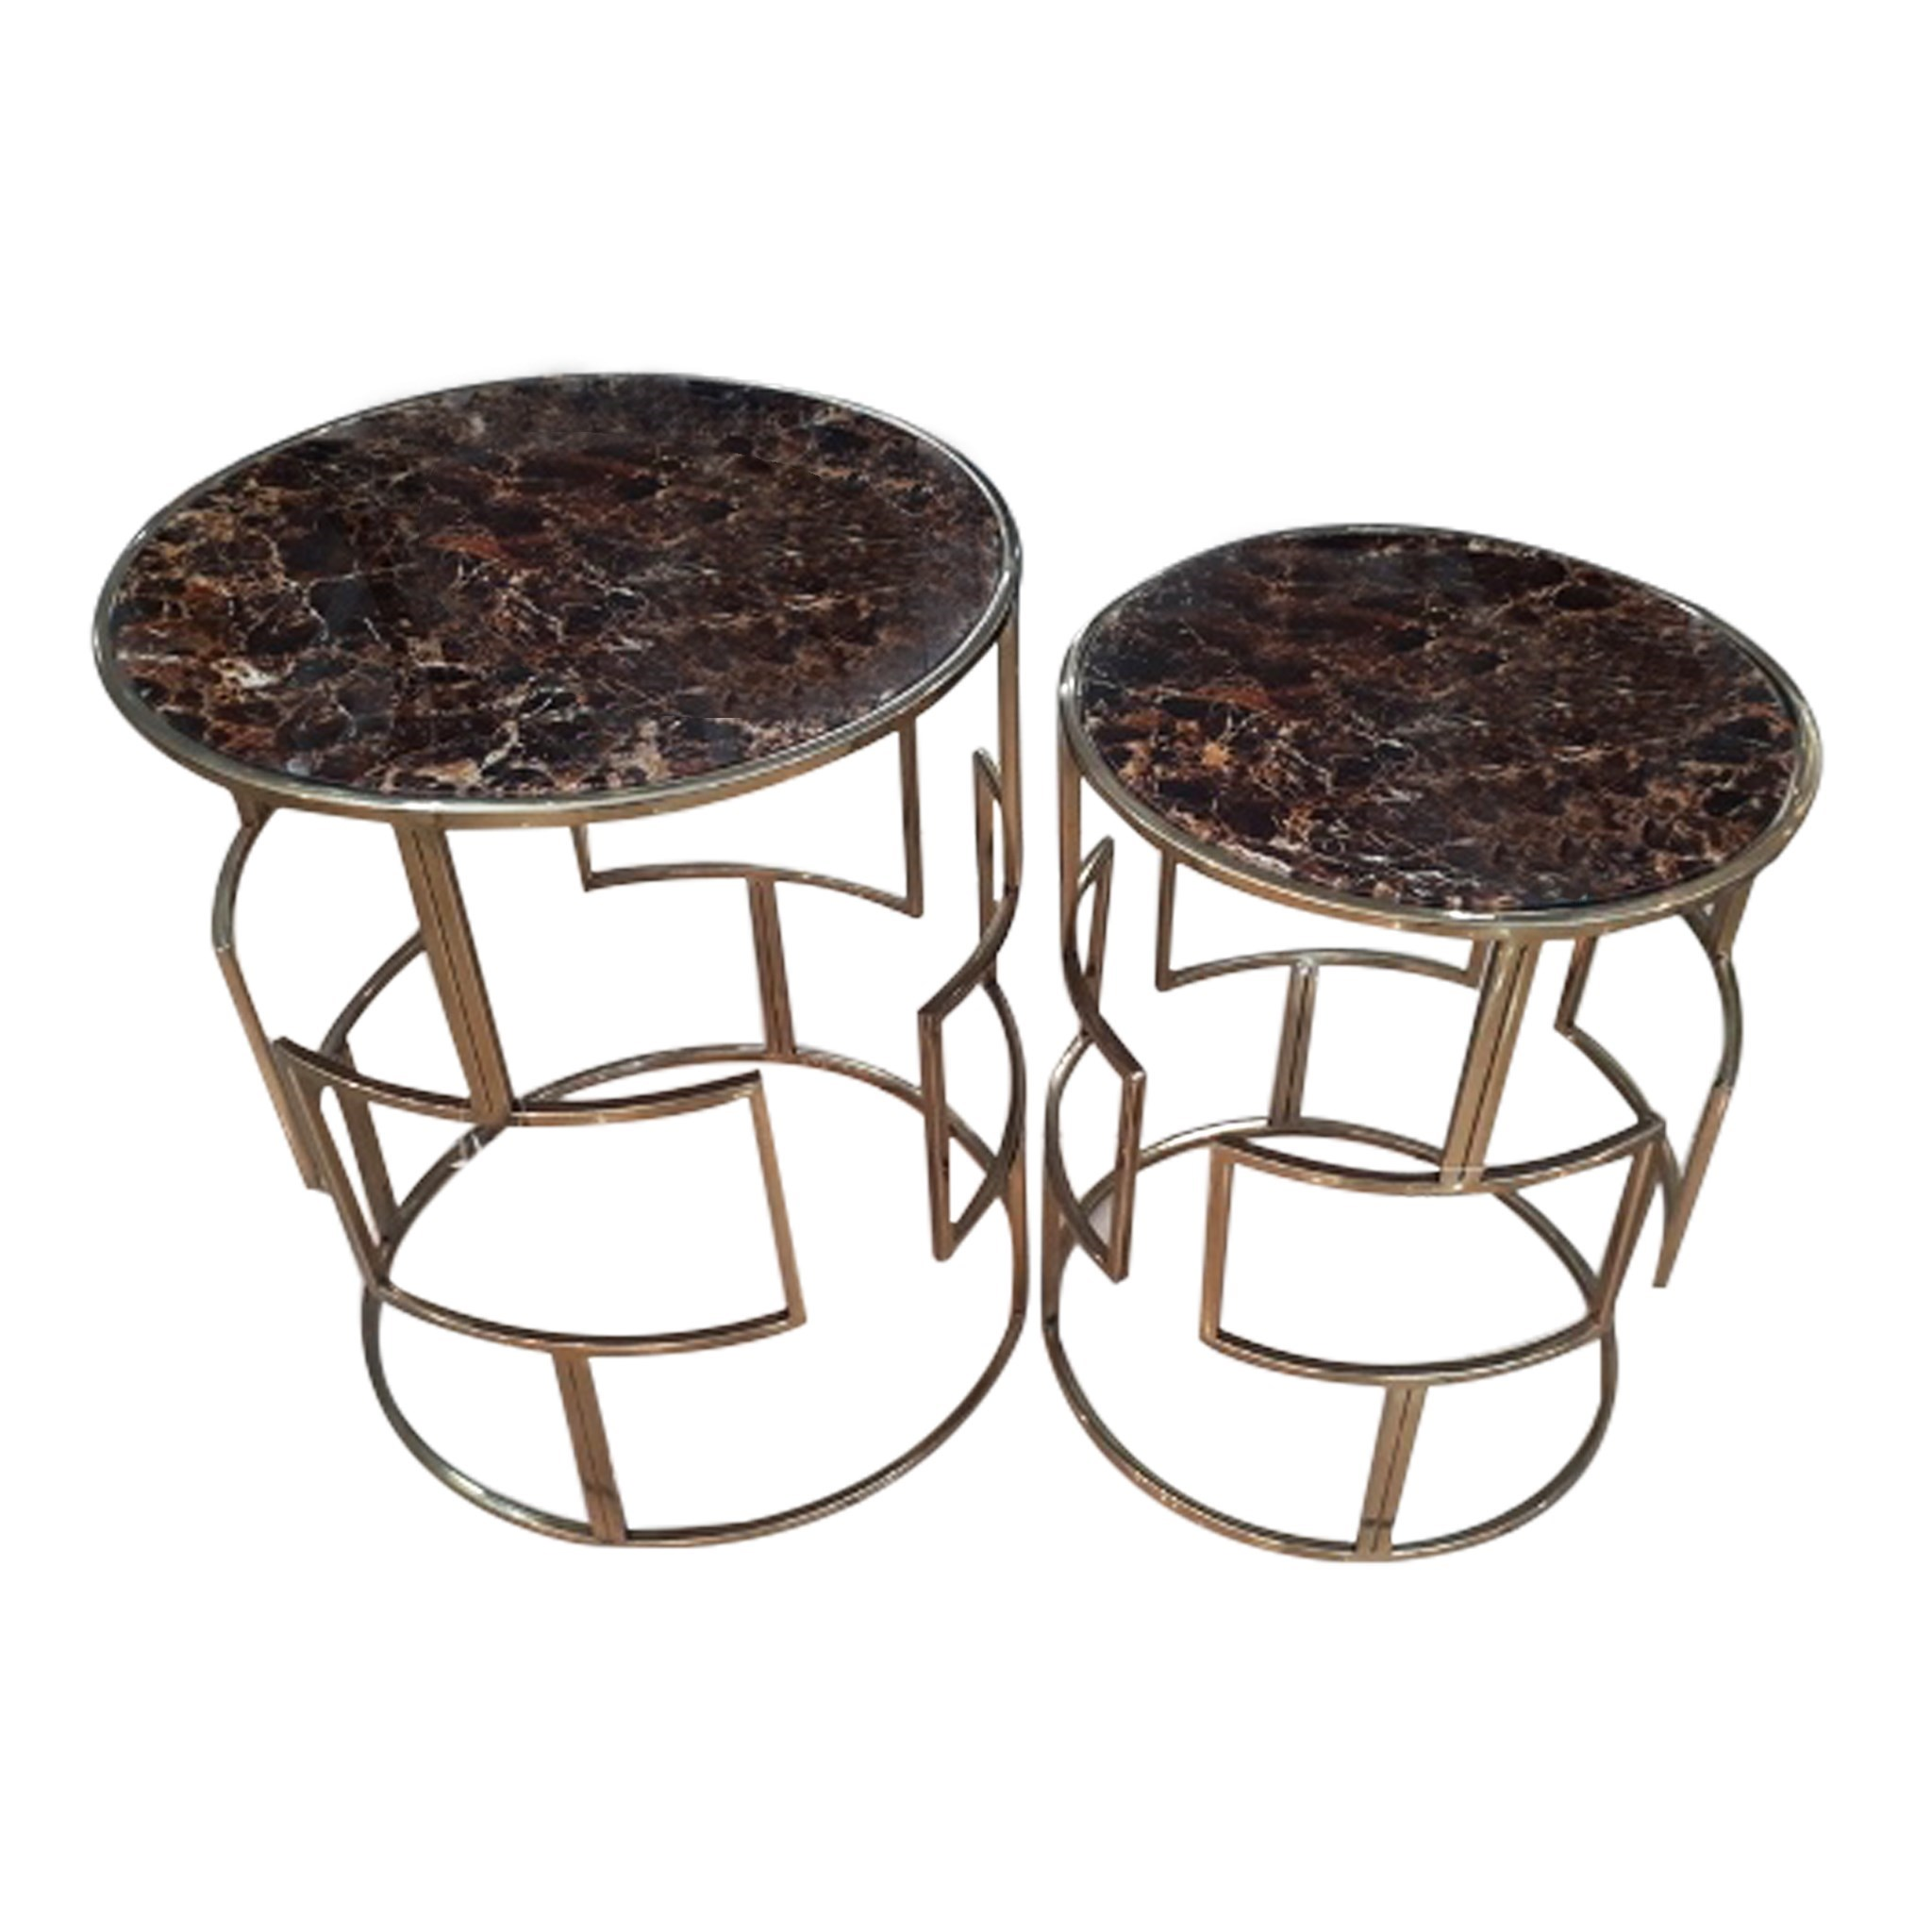 gloria accent table brass metal glass top tables white bedside kmart gray coffee target kids rugs garage threshold seal dcuo occult location bedroom furniture packages curtain